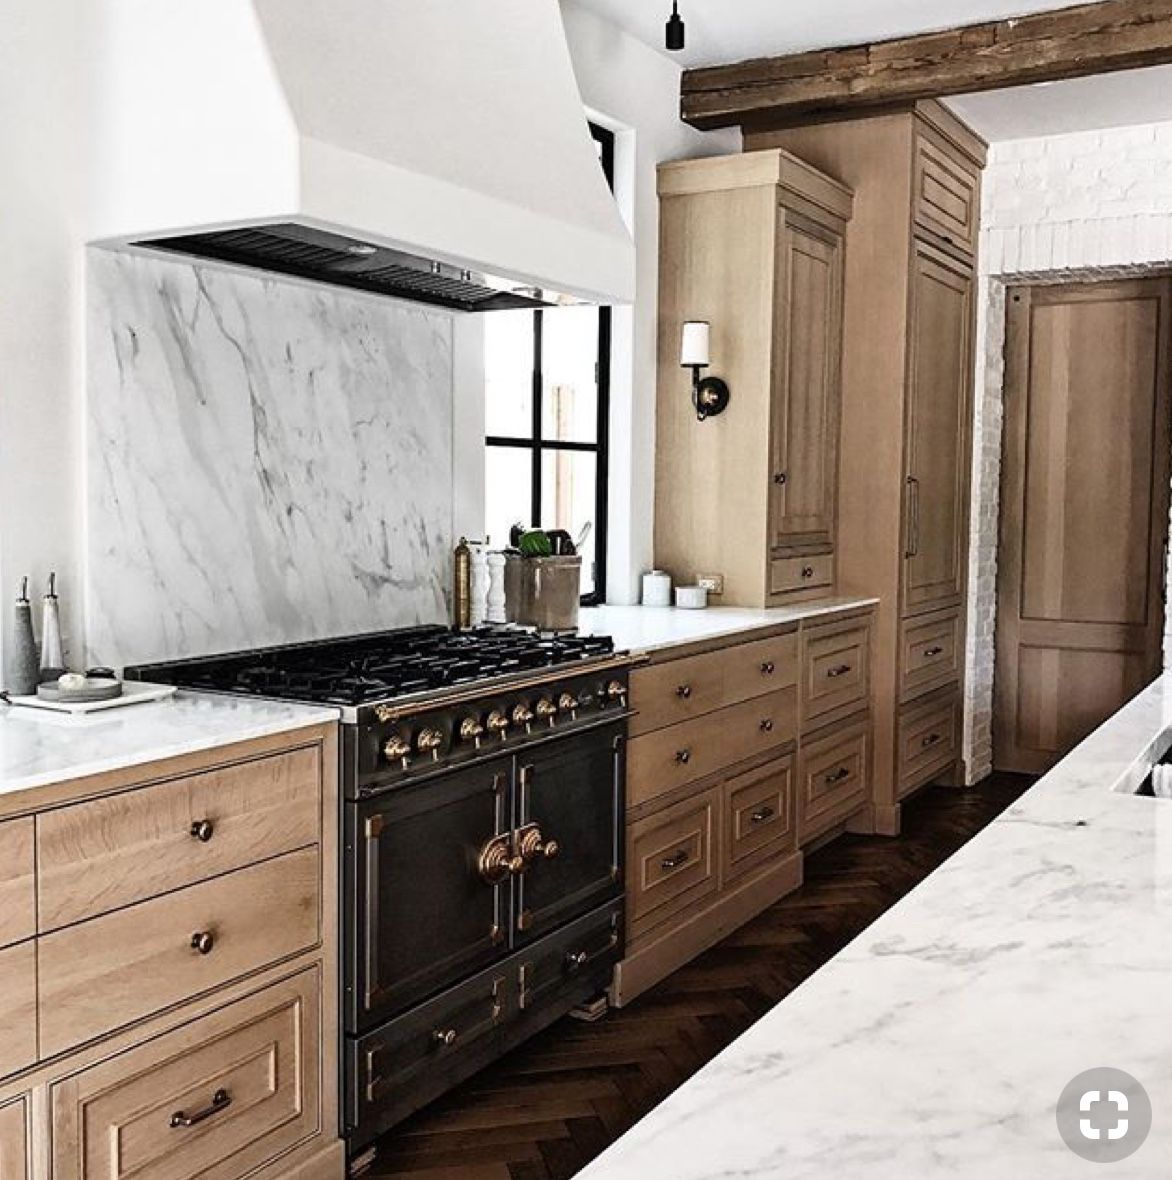 Timeless Kitchens 11 Kitchens With Stained Cabinets Timeless Kitchen Modern Kitchen Cabinet Design Kitchen Style Timeless kitchen cabinet colors